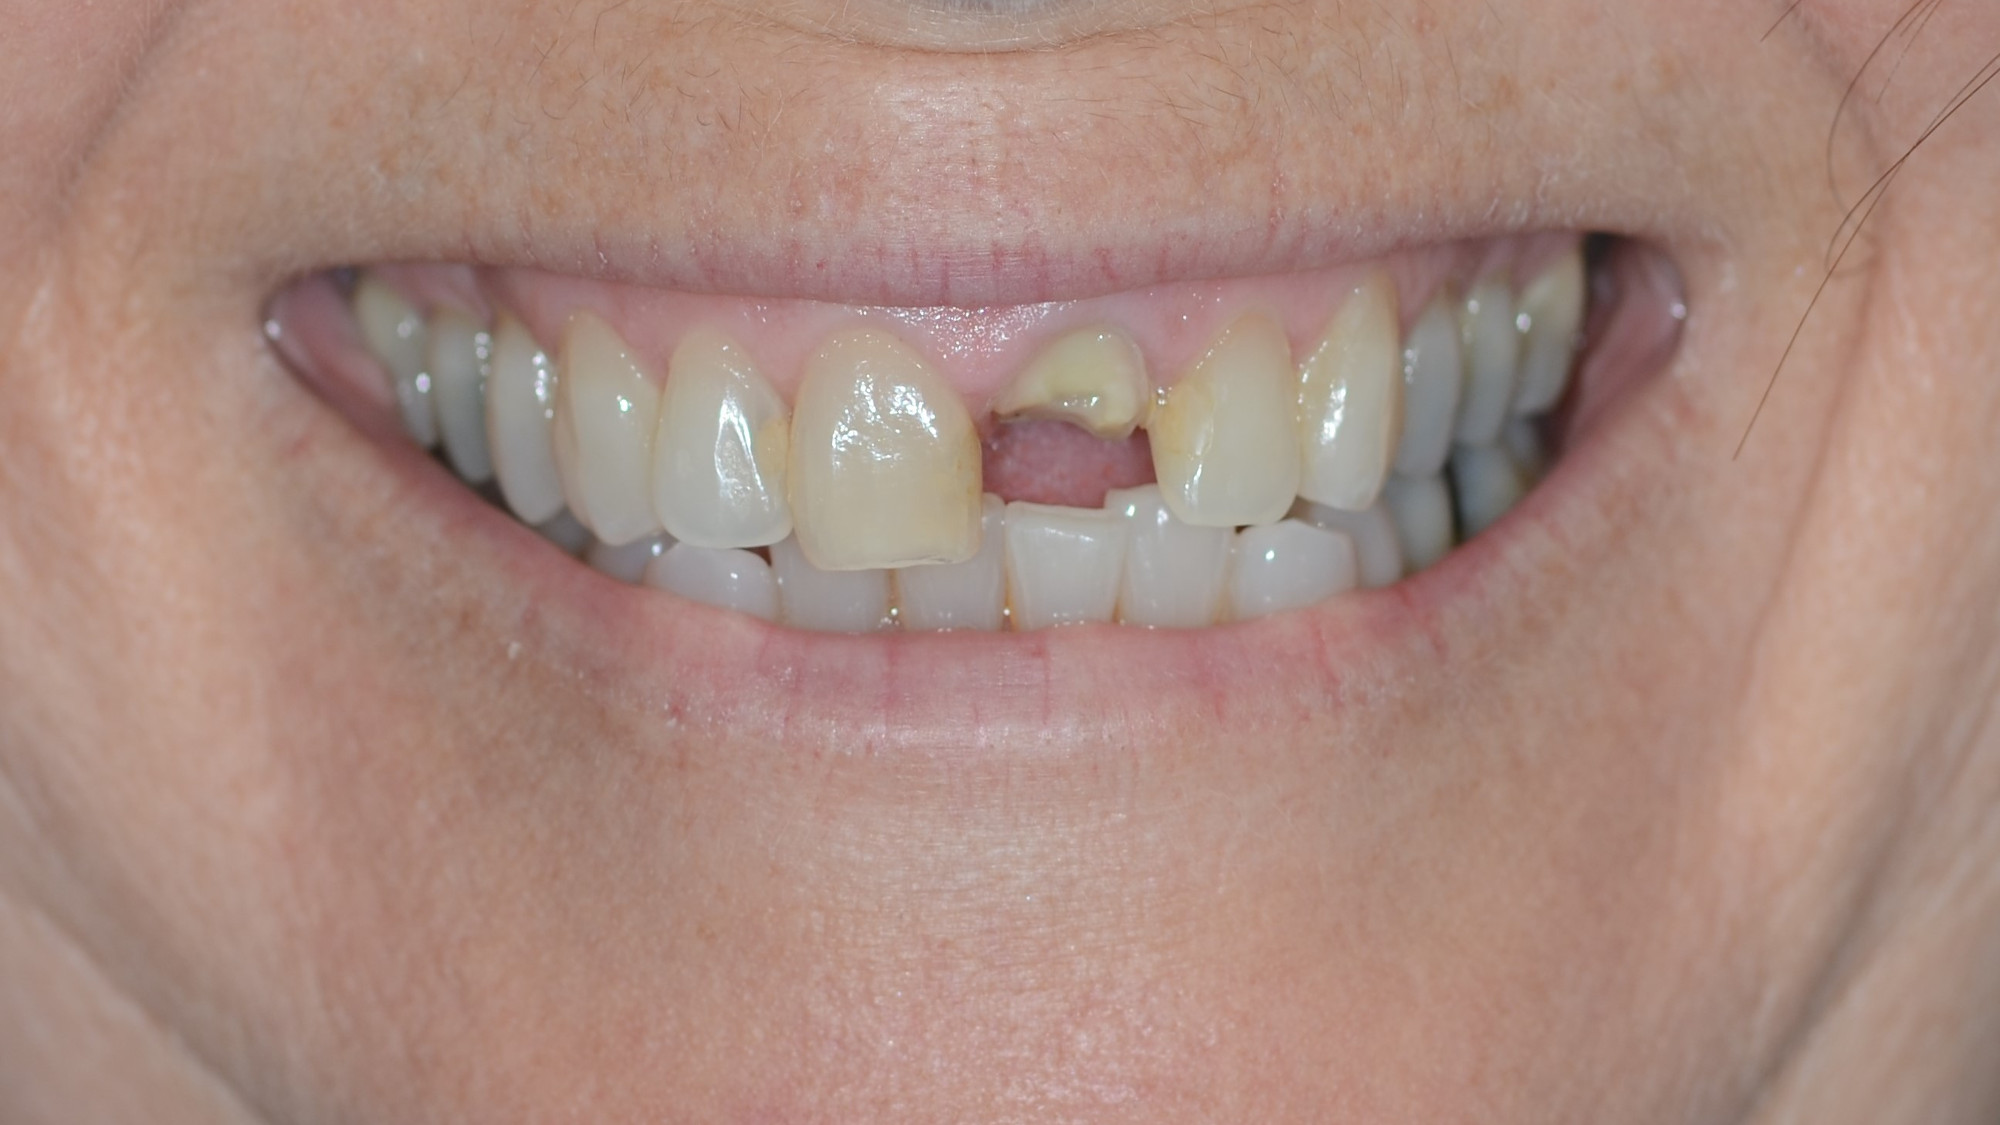 Immediate implant placement and restoration in fractured incisor with external root resorption